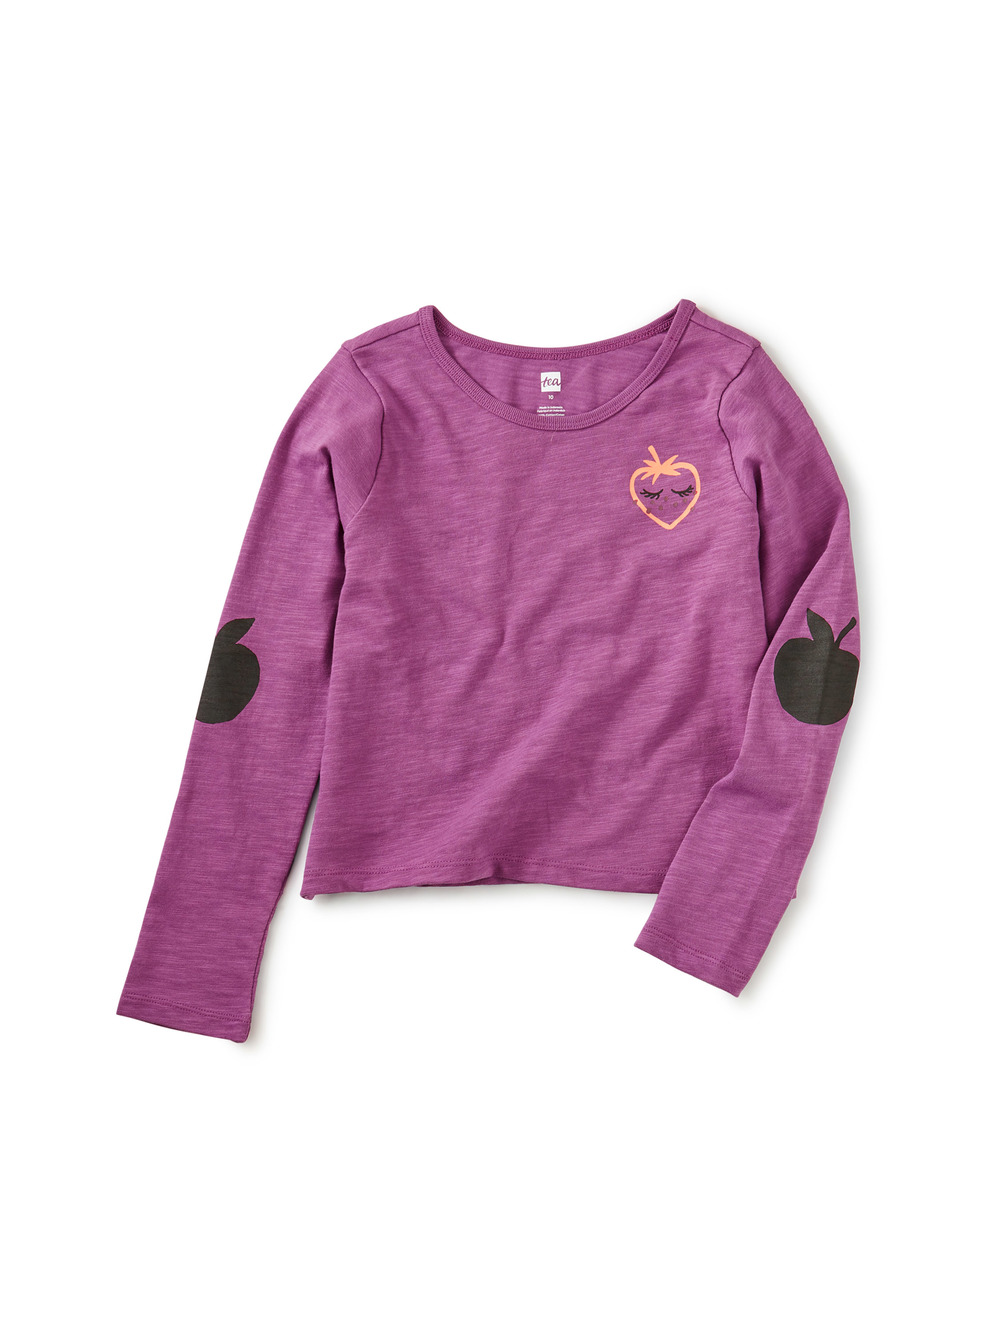 Berry Elbow Patch Tee